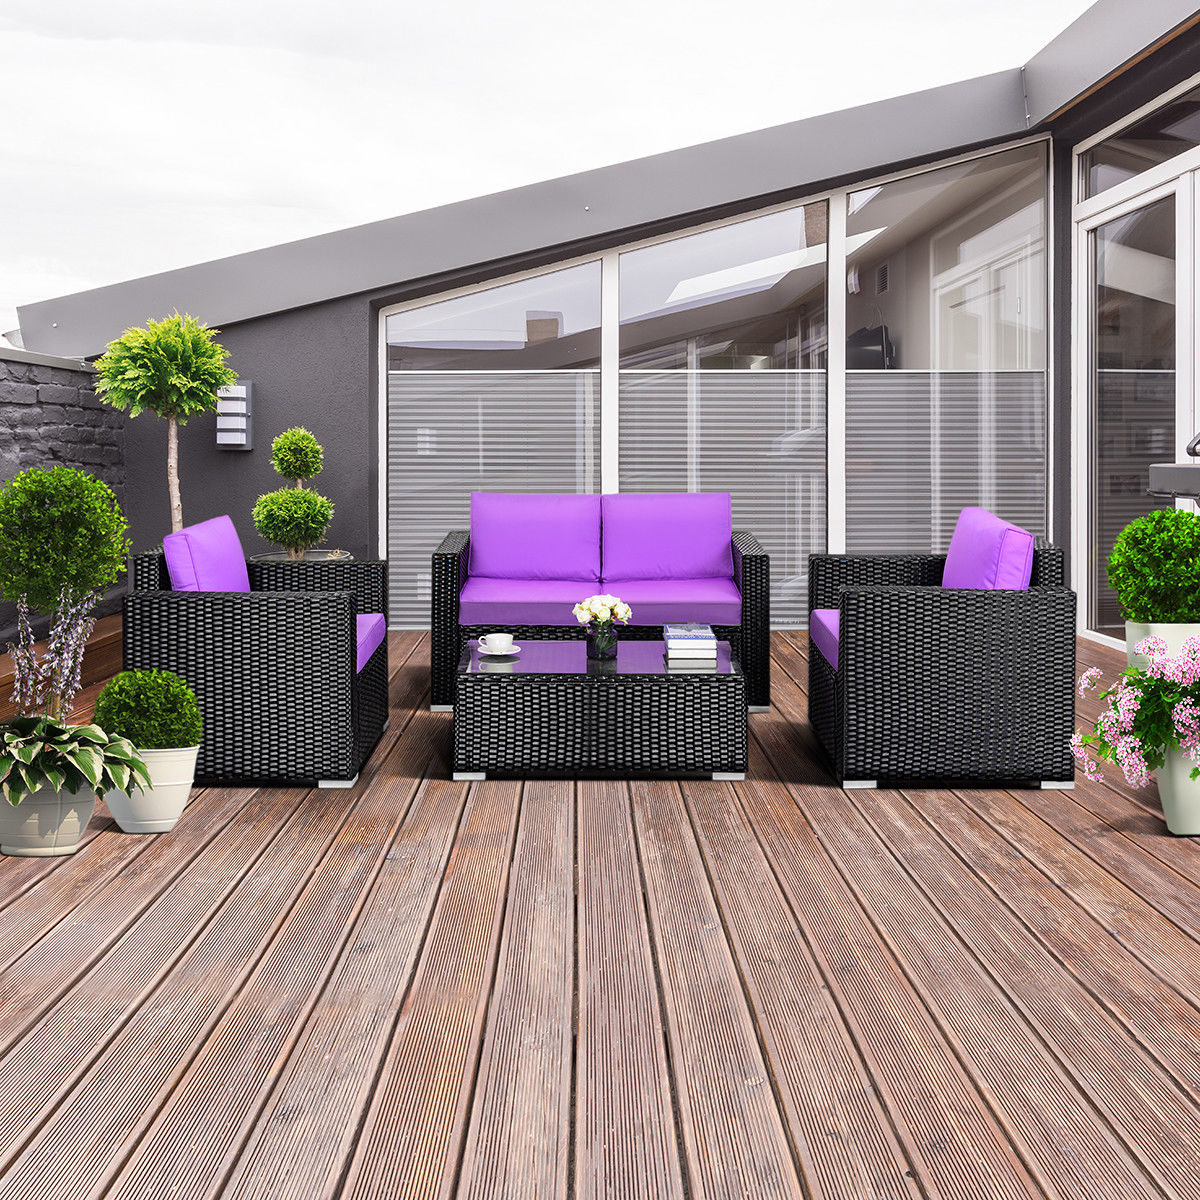 gymax 4pc rattan patio furniture set outdoor rattan wicker with purple cushion